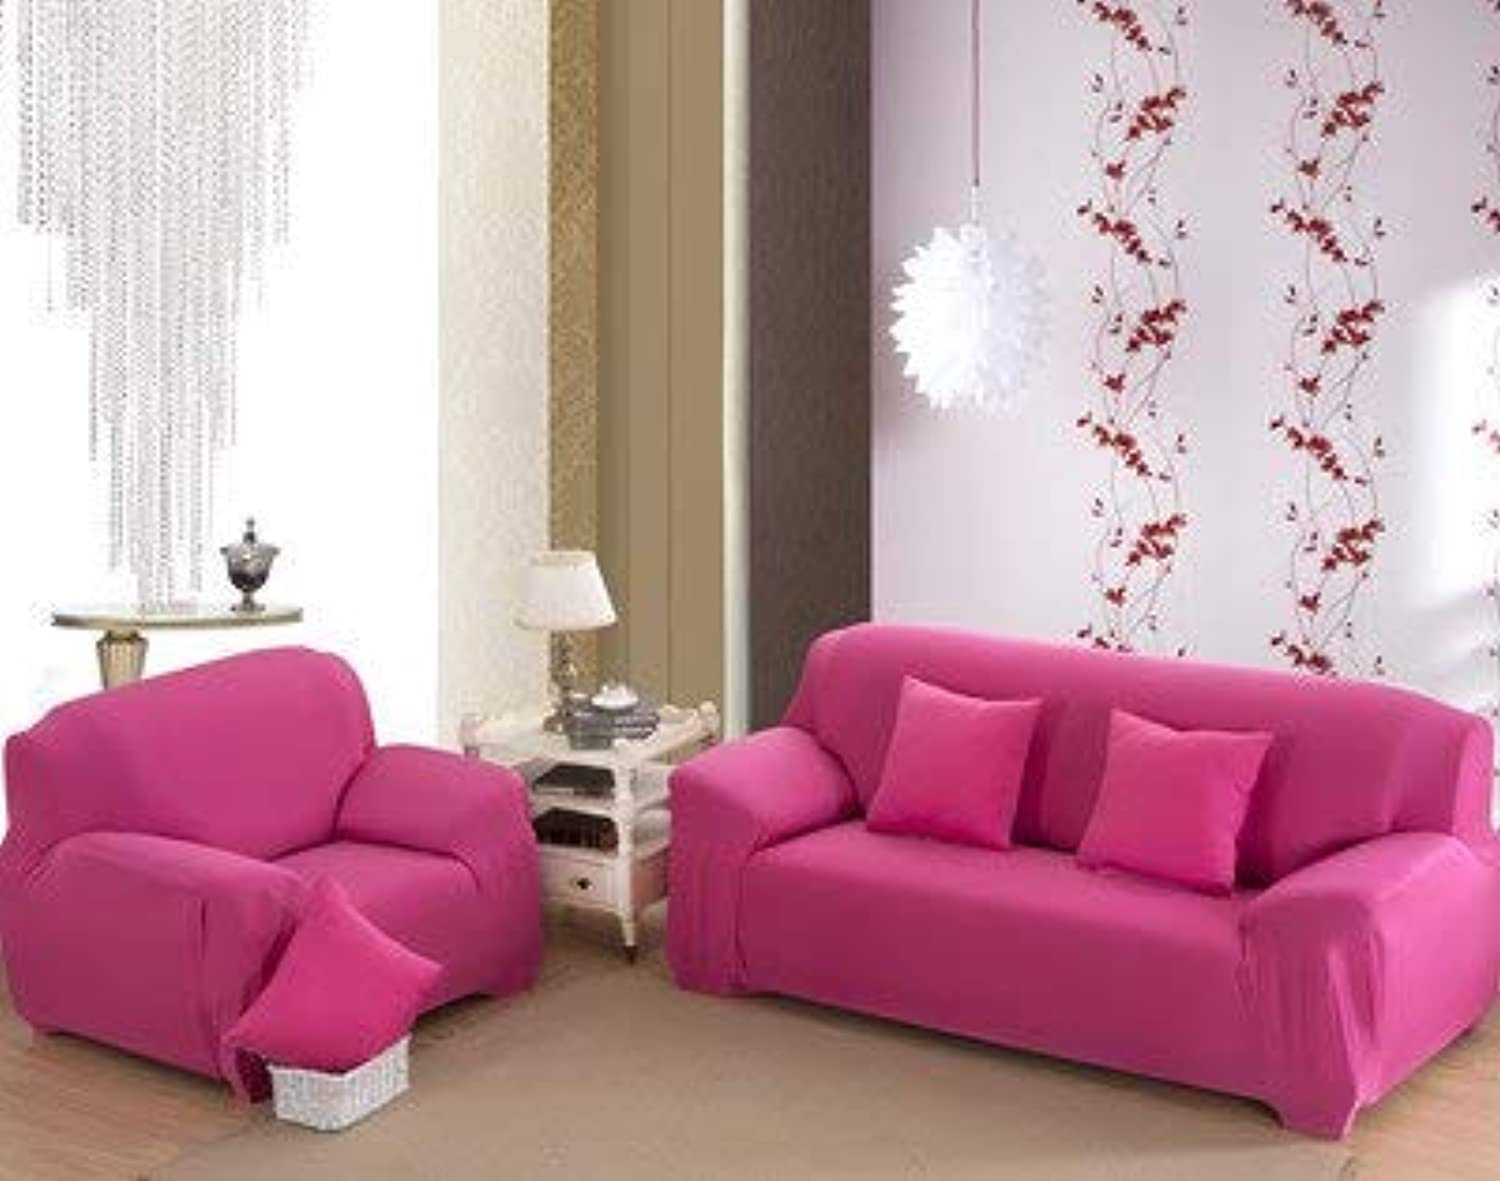 Farmerly KISS Queen Solid Sofa Cover Elastic Knitted Fabric slipcovers All-Inclusive Couch case for All Size Shape Sofa   hot Pink, 90-140cm